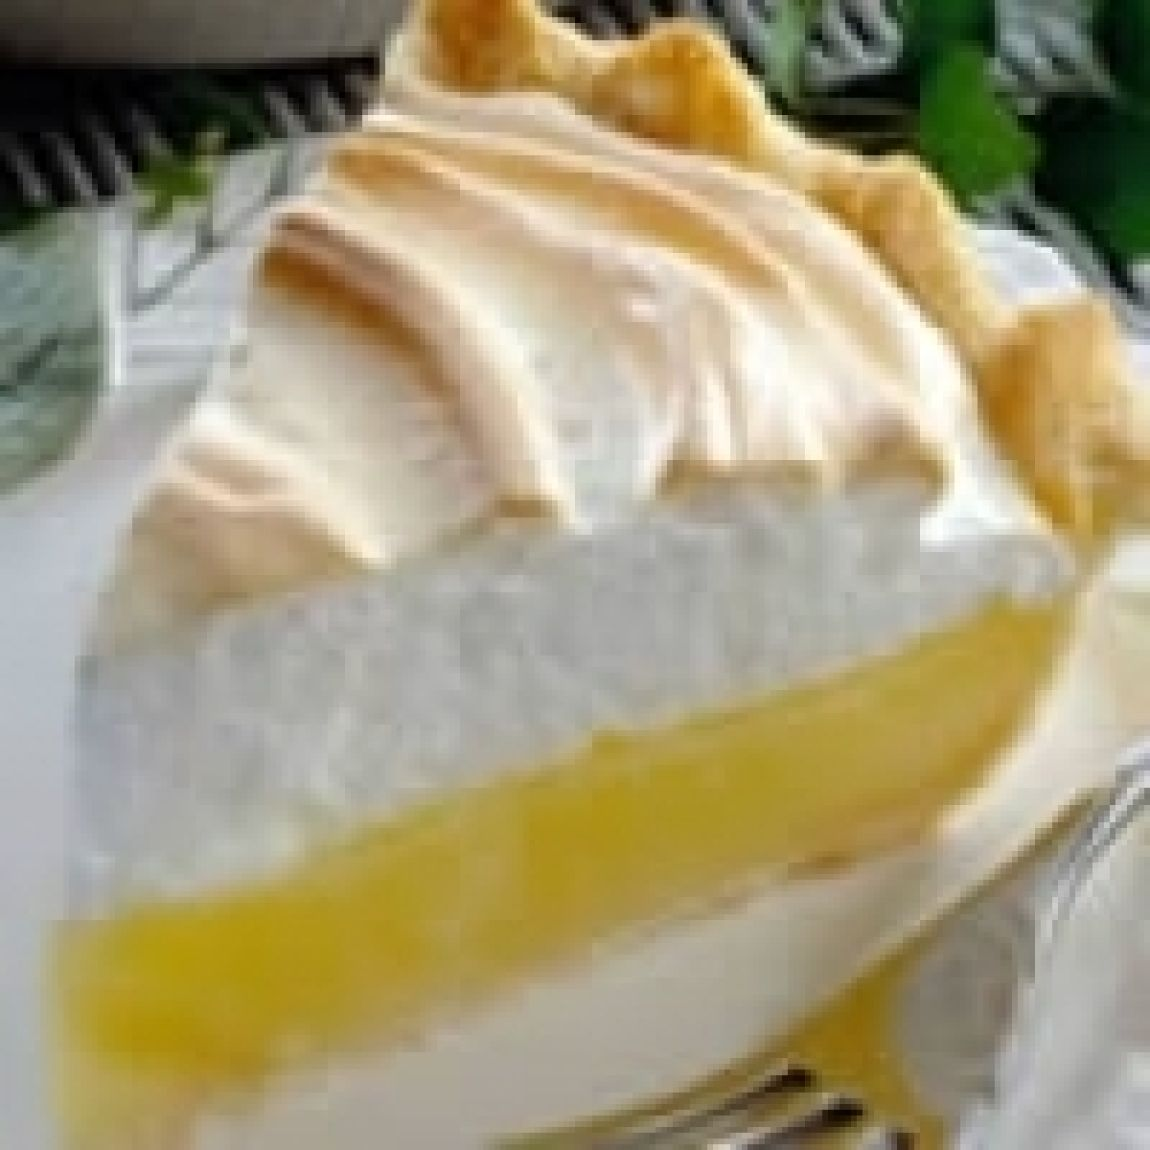 Easy Lemon Meringue Pie #lemonmeringuepie